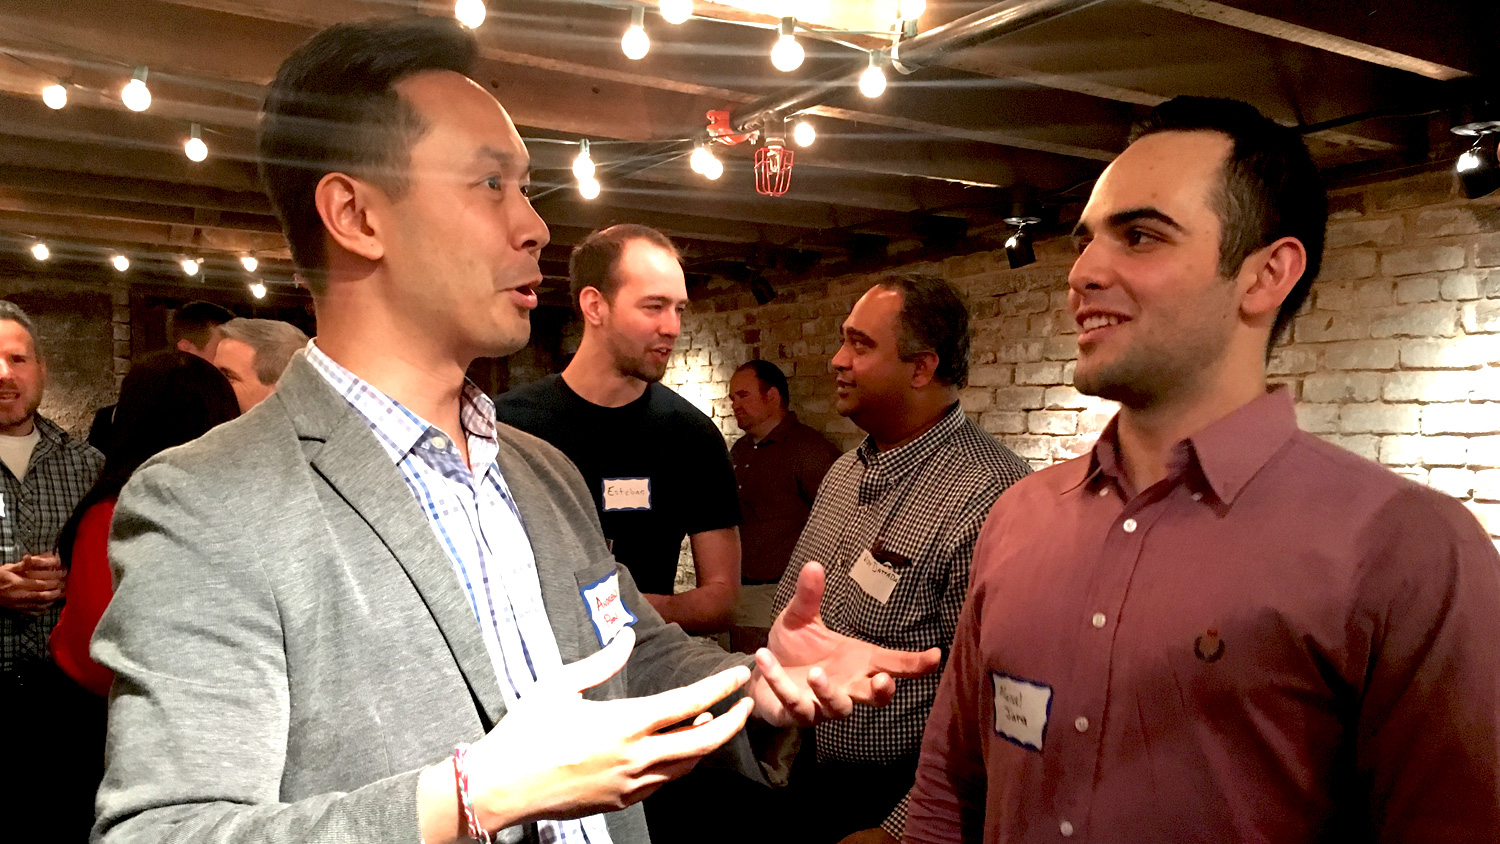 Andrew Poon, left, in discussion at an NC State Entrepreneurship mentor-student networking event.